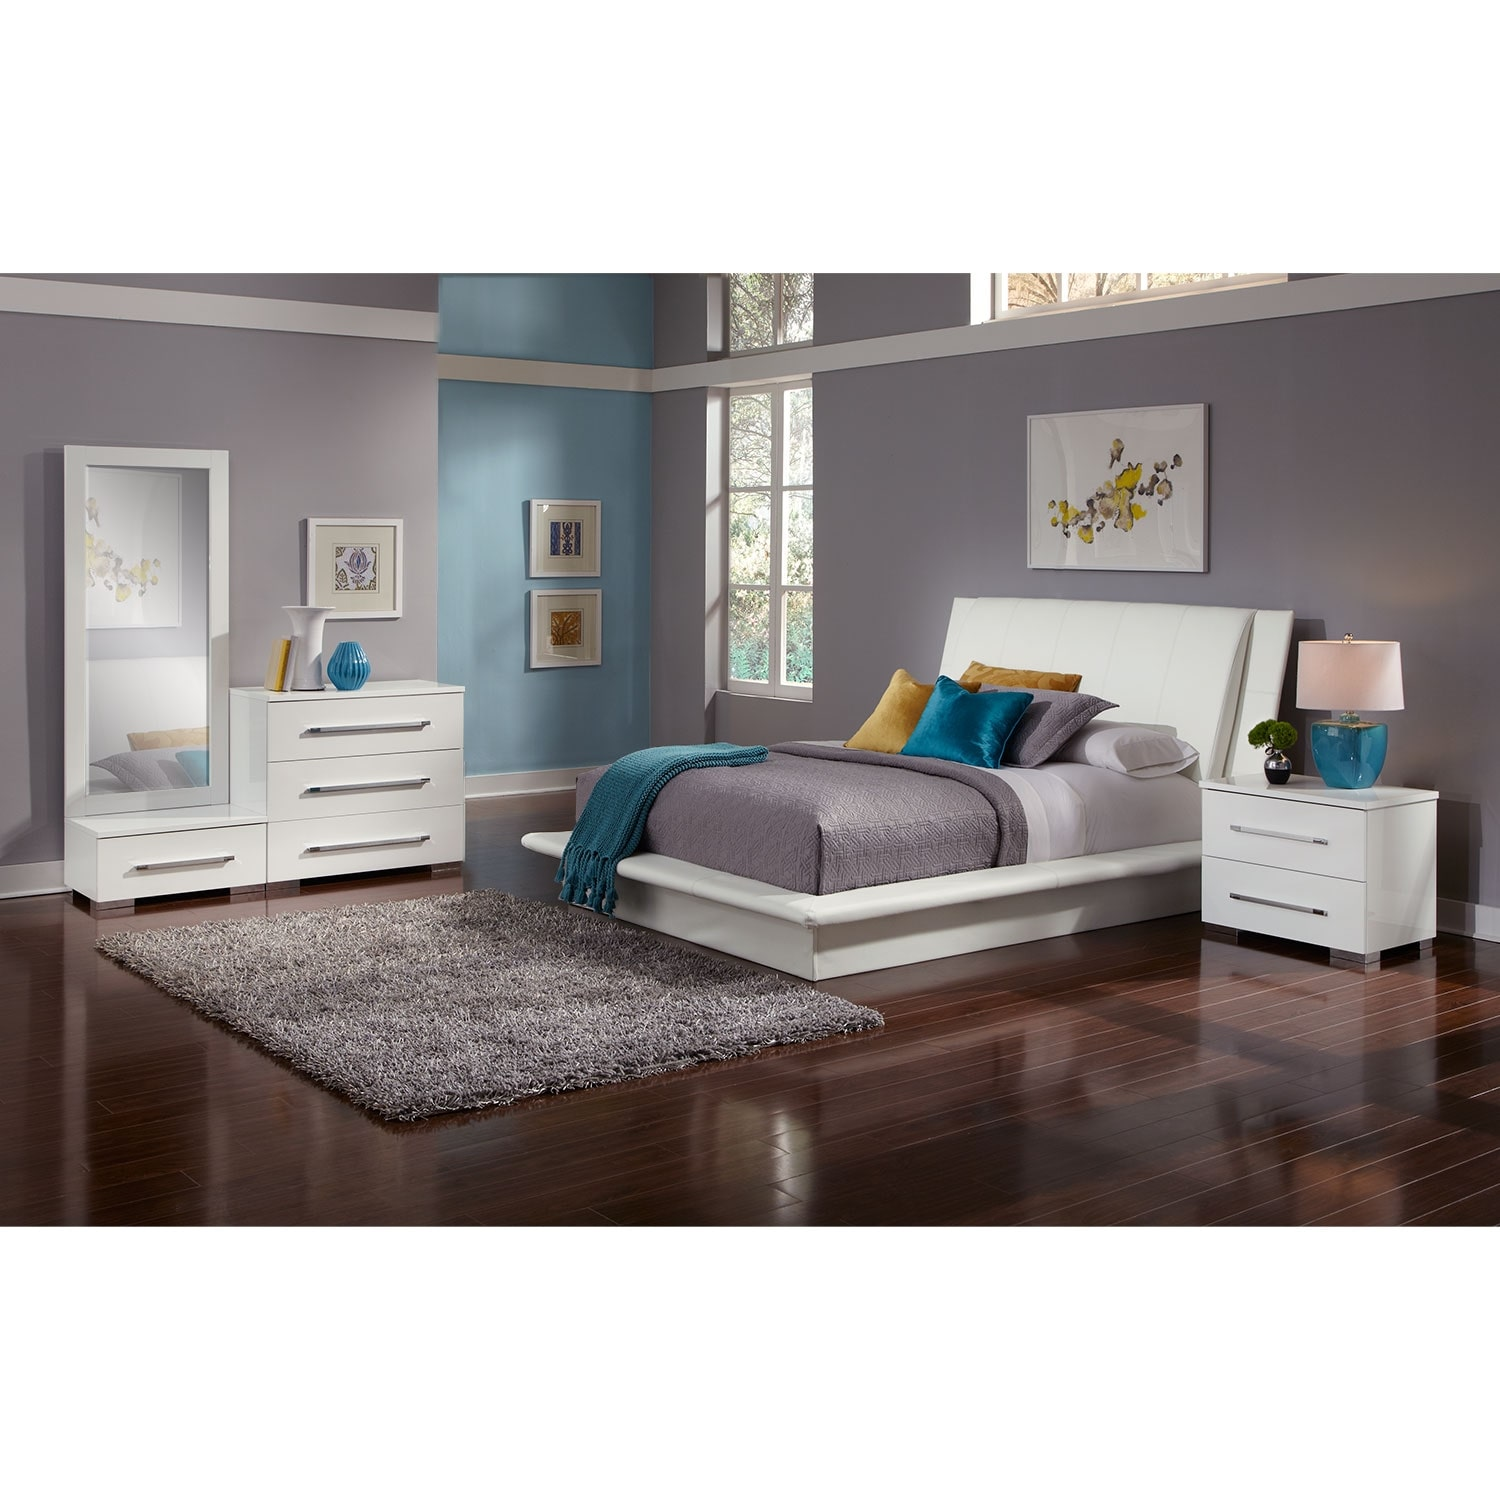 Dimora 6-Piece King Upholstered Bedroom Set - White